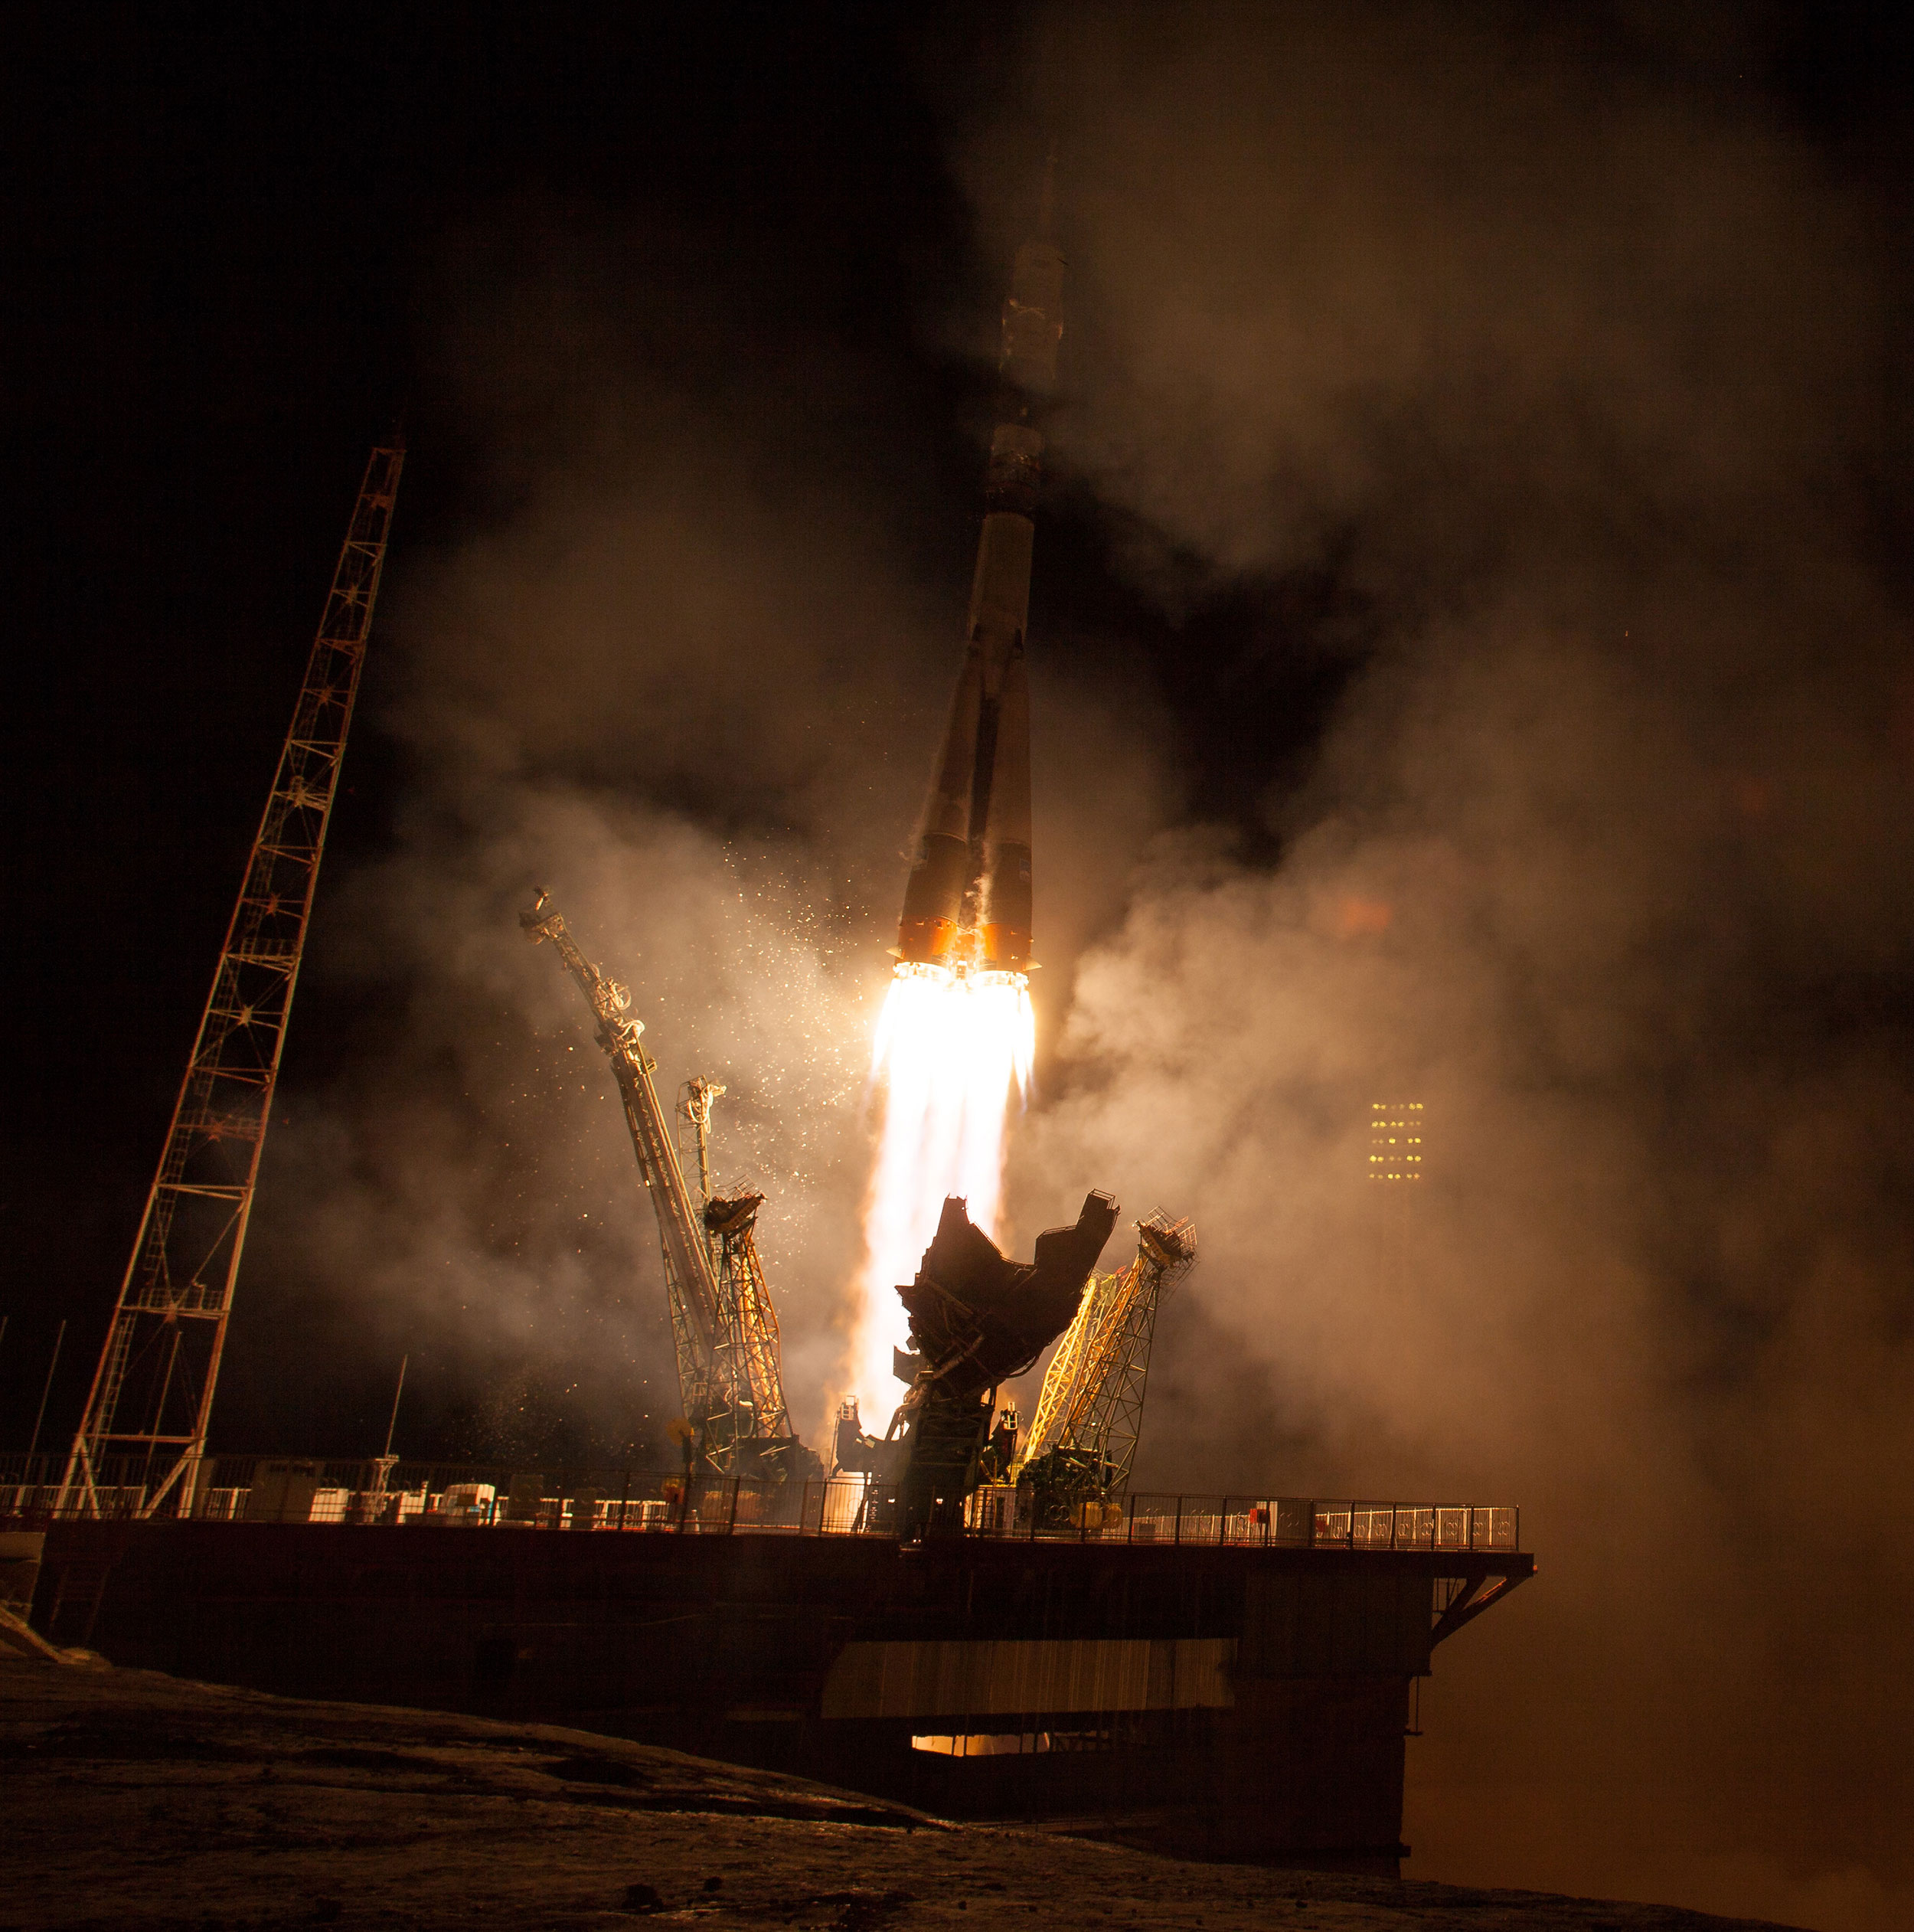 Despite recent failures of Russian rockets, the crewed version of the Soyuz has continued to be a reliable spacecraft. Here, the TMA-14M rocket launches in 2014. Credit: NASA/Aubrey Gemignani